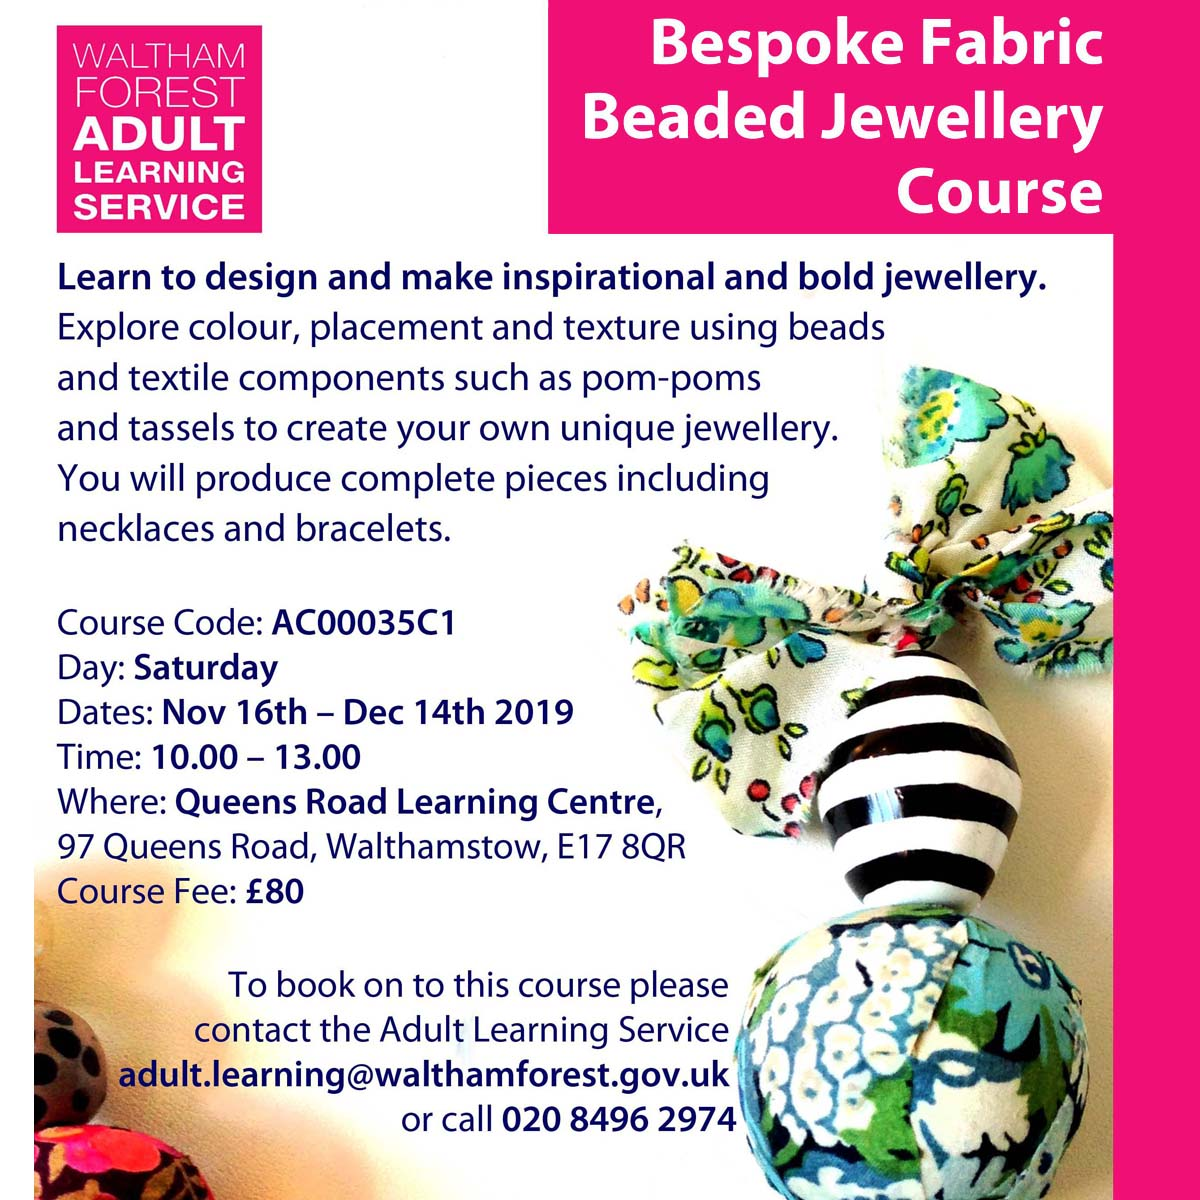 Bespoke Beaded Jewellery Course